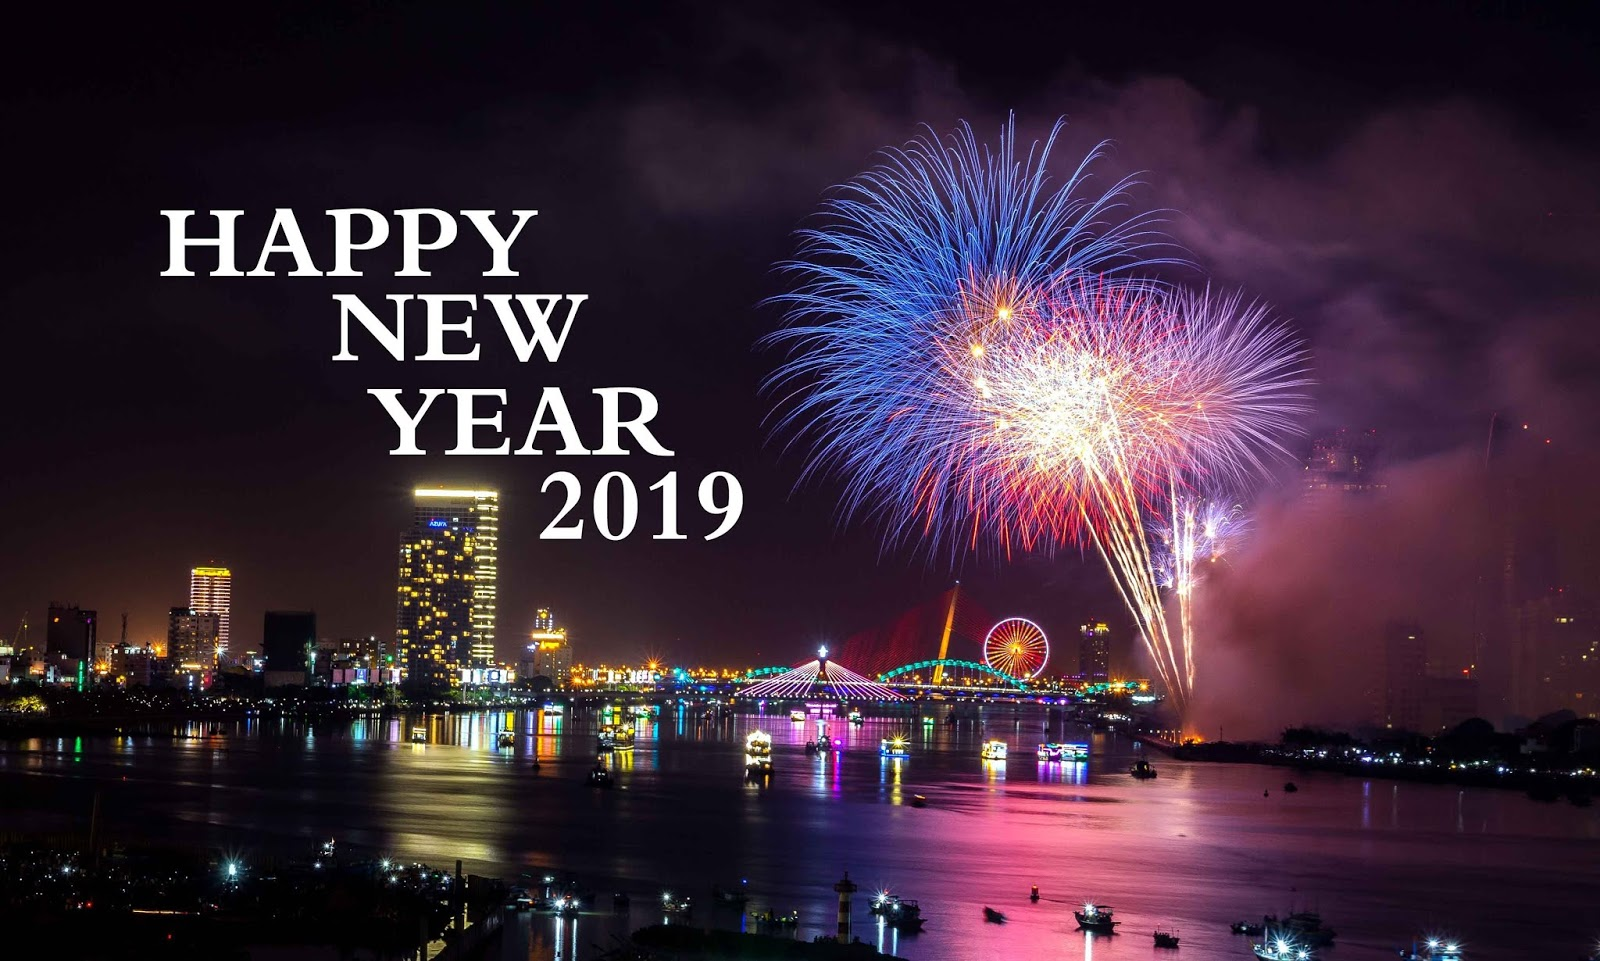 Happy New Year 2019 Wishes, Funny New Year 2019 Messages, SMS For Friends